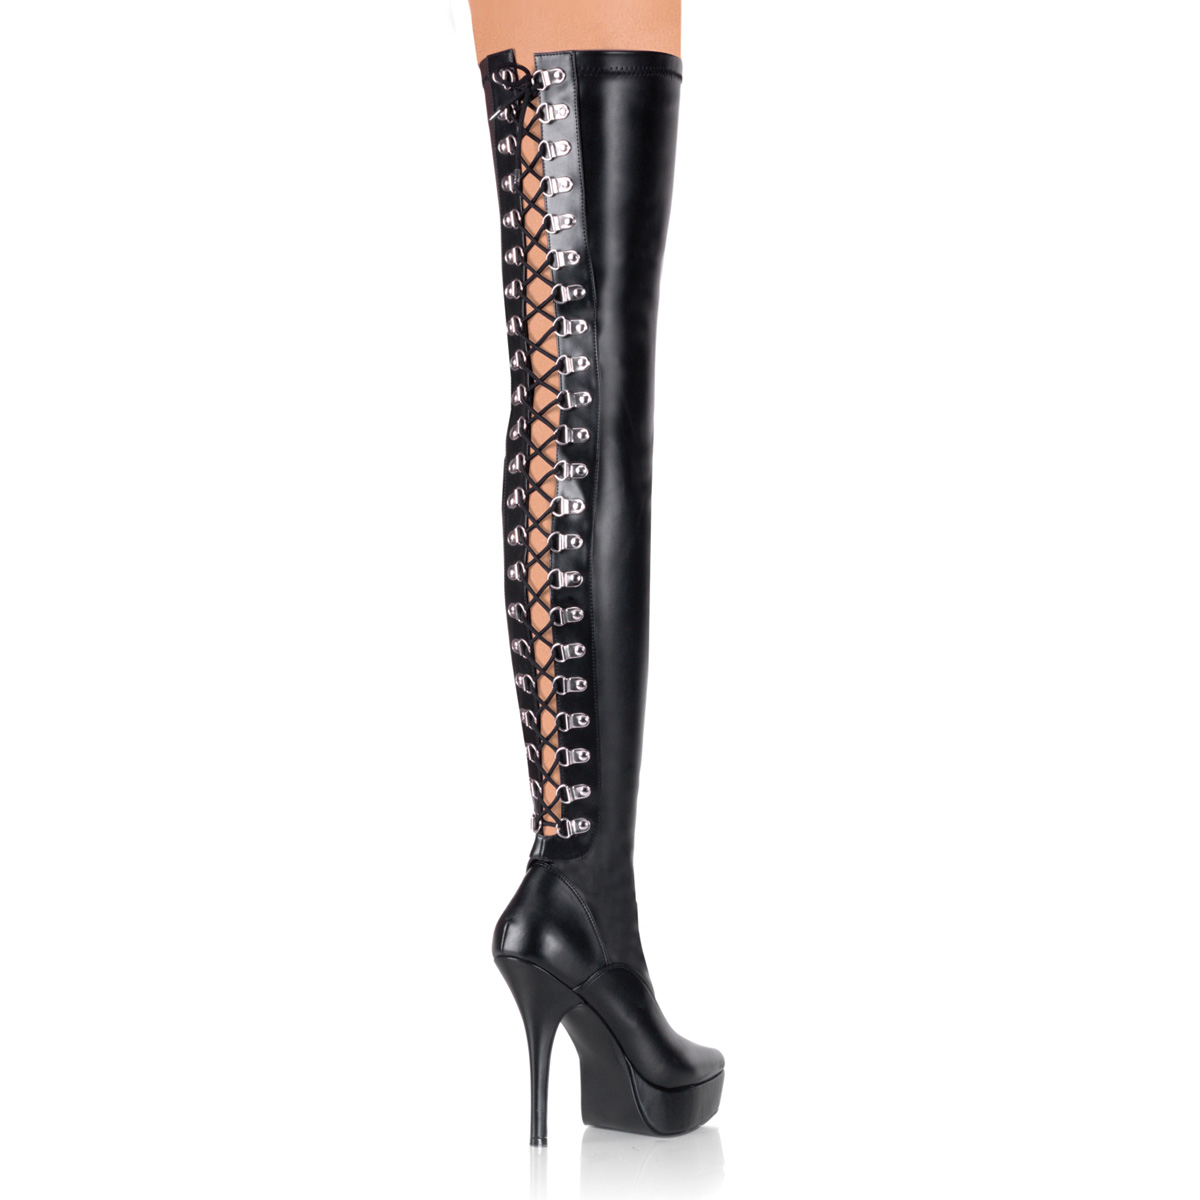 PLEASERs 5 1/4 inch Back Lace-Up Stretch Platform Thigh Boot Black Stretch Faux Leather at Sears.com